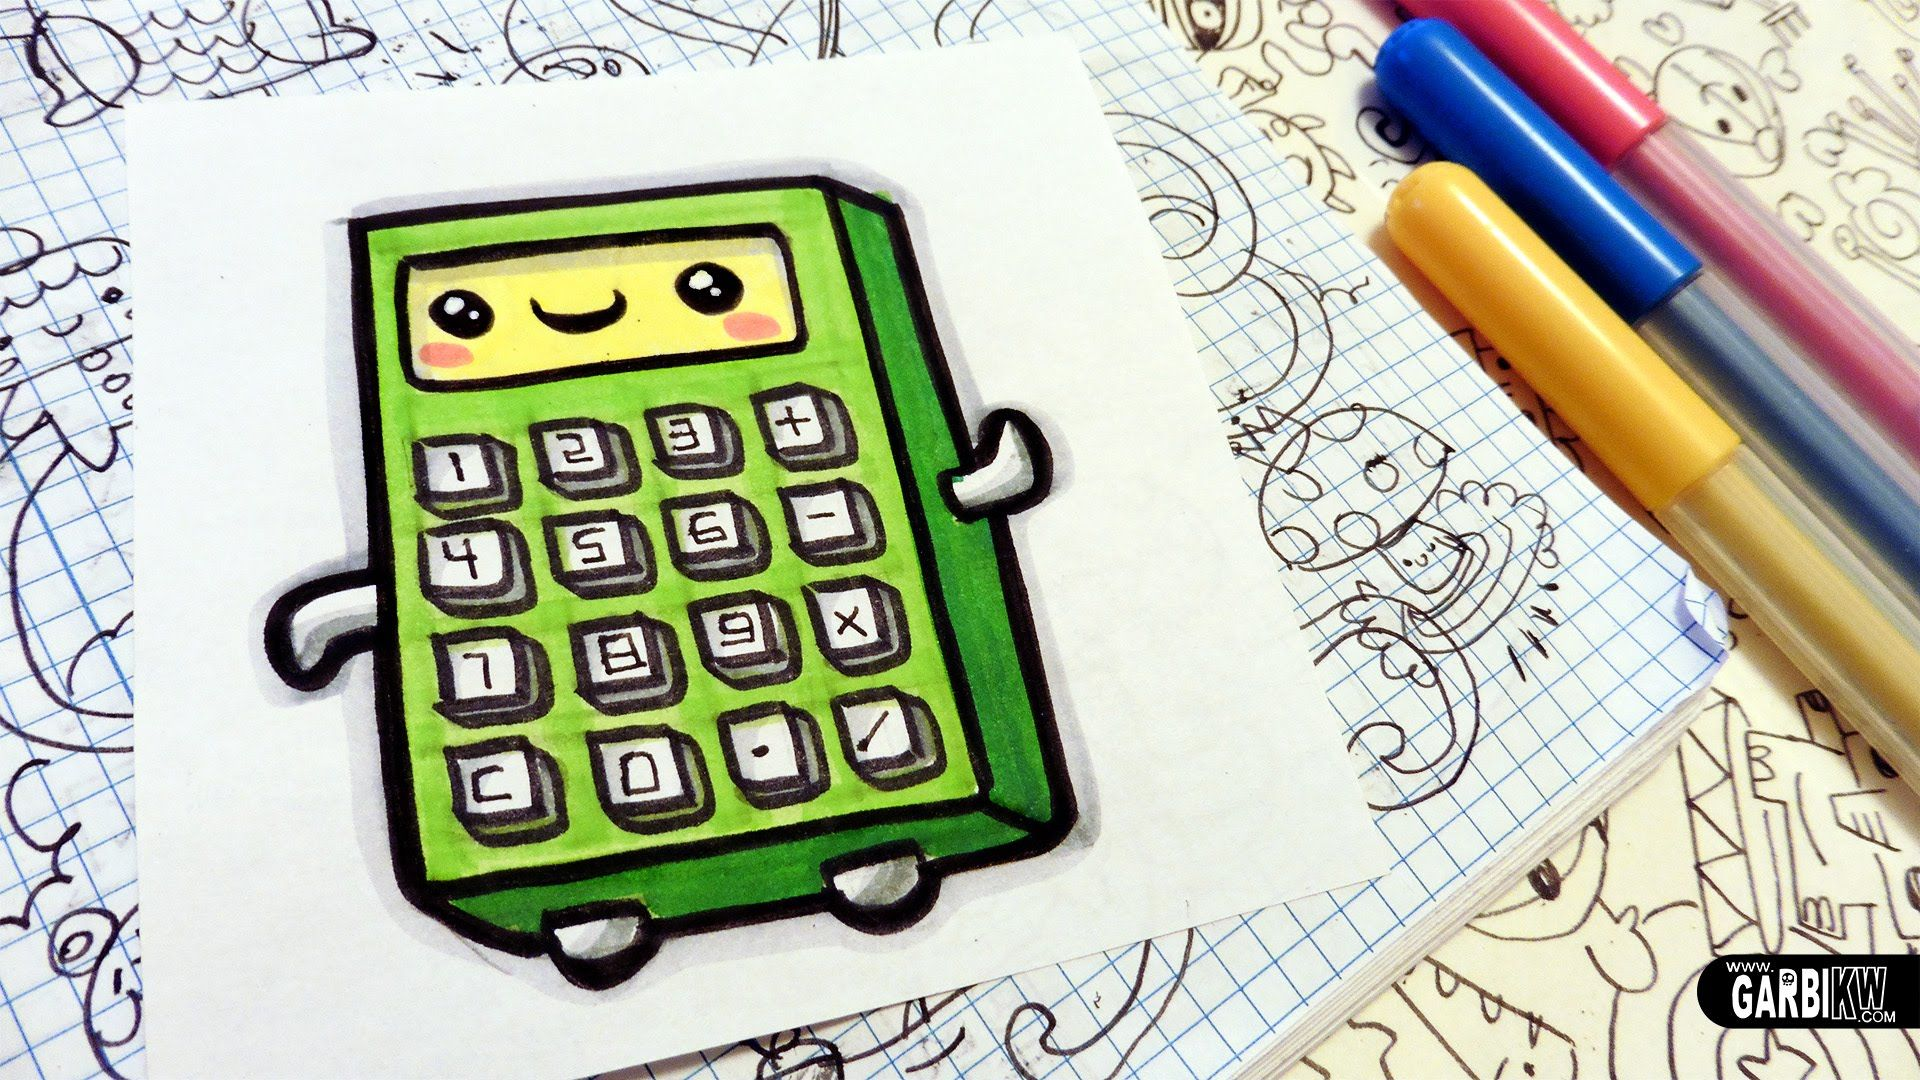 How To Draw A Cute Calculator Easy And Kawaii Drawings By Garbi Kw Kawaii Drawings Calculator Ink Doodles